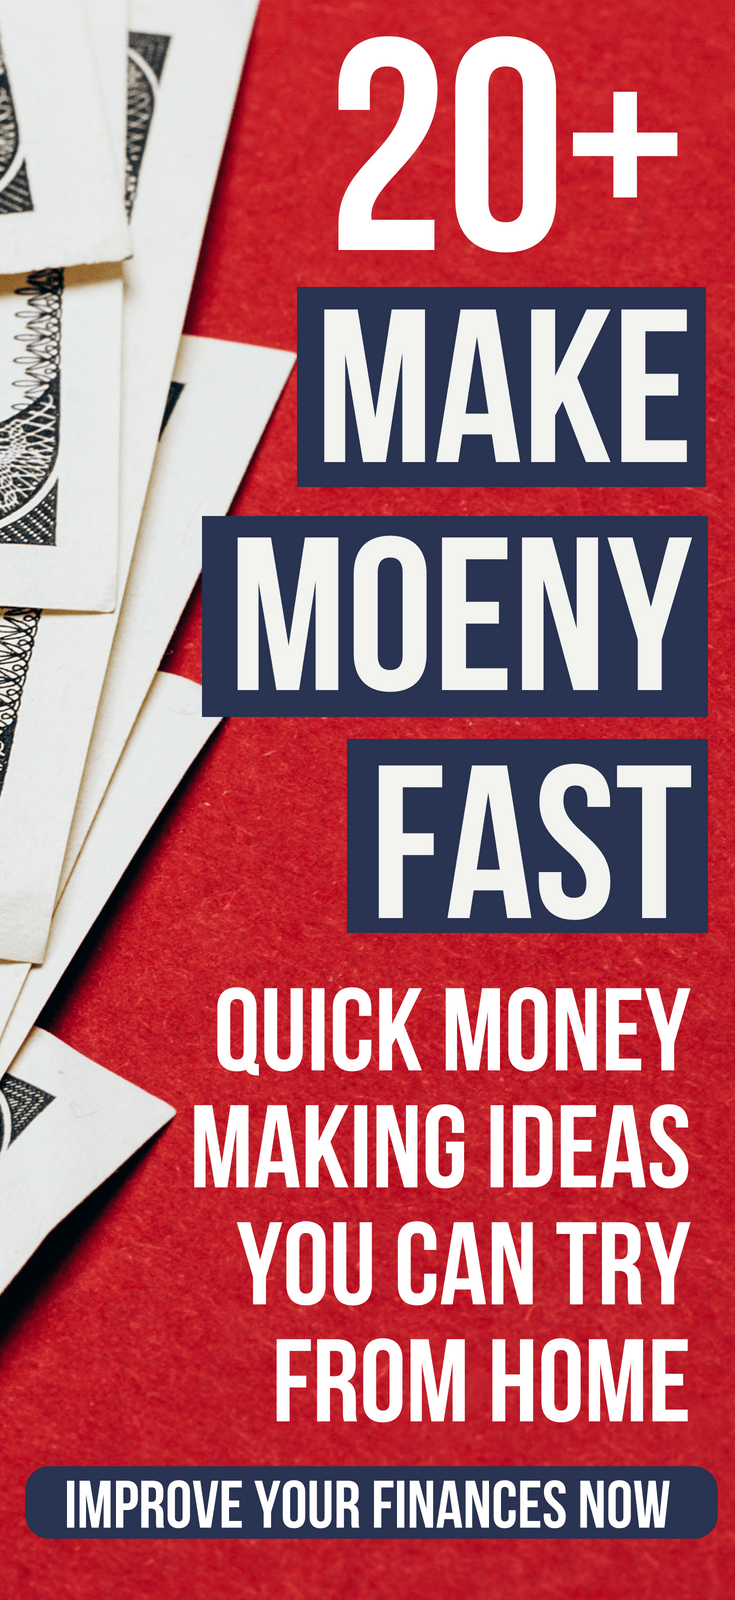 24+ Safe, Creative, & Fast Ways To Get Money Fast Need money fast? Here's more than 20 safe and creative ways to get money in a hurry. #thewaystowealth #makemoneyfast #makemoney #makemoneyonline